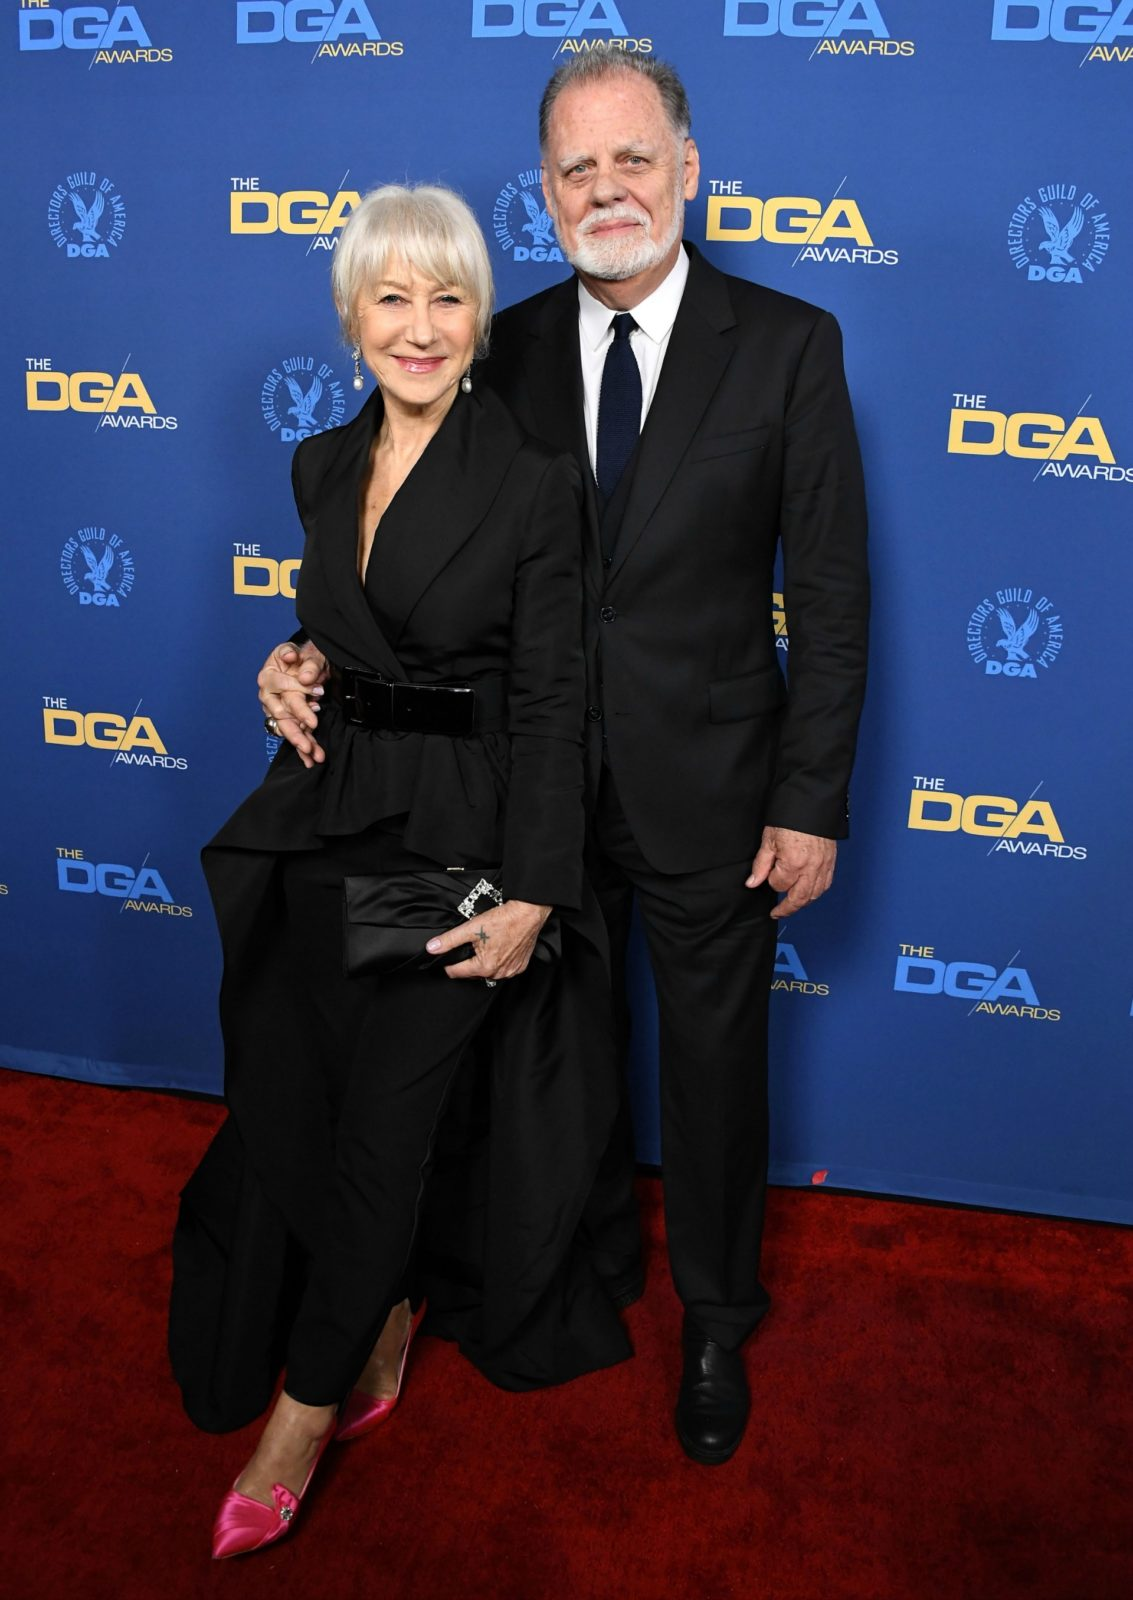 Helen and her husband Taylor Hackford were the ultimate couple at this year's event.